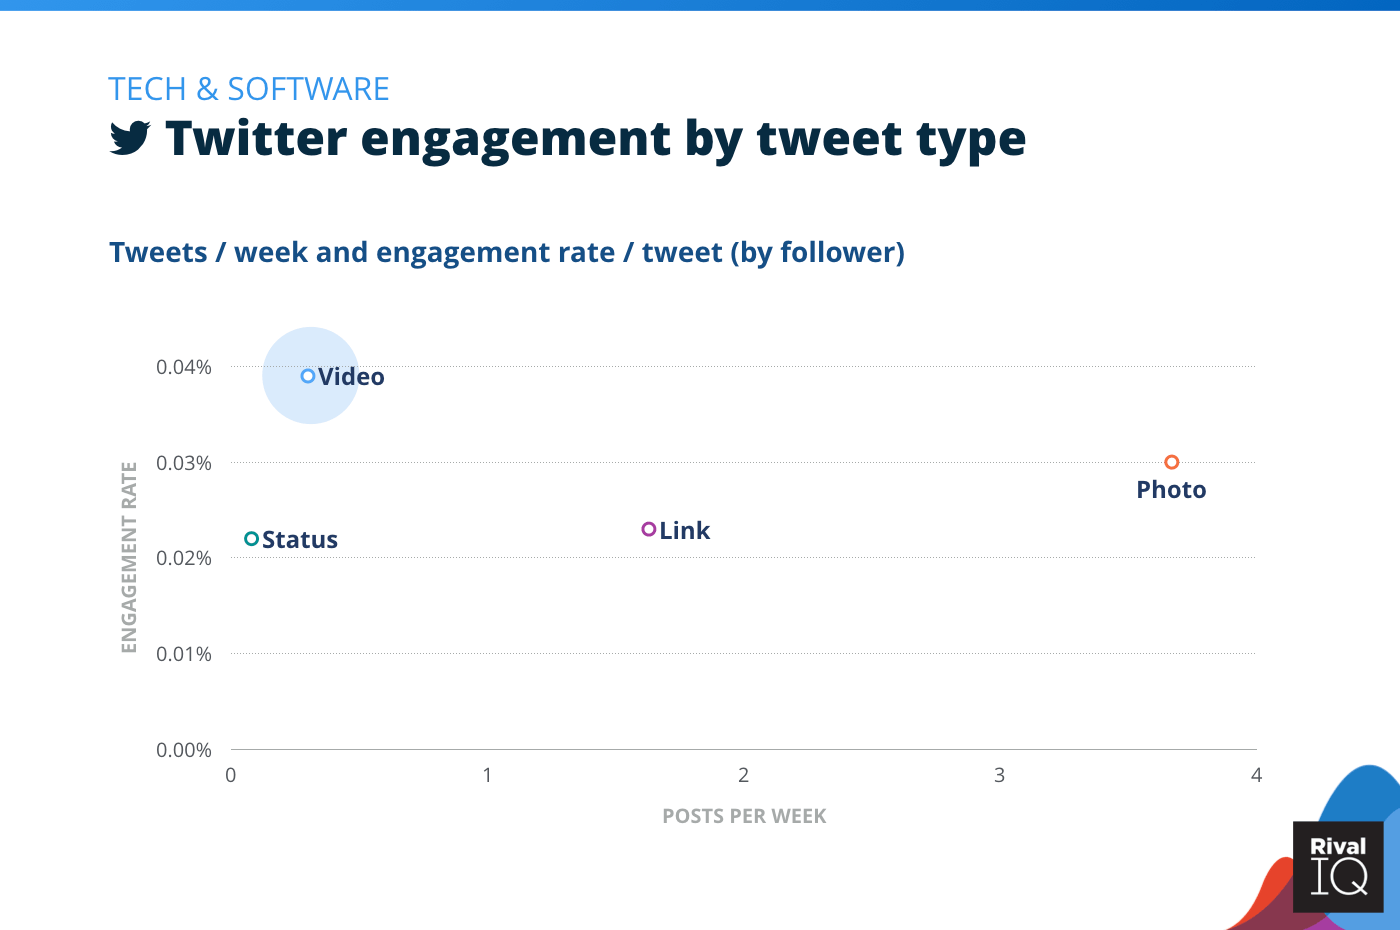 Chart of Twitter posts per week and engagement rate by tweet type, Tech & Software